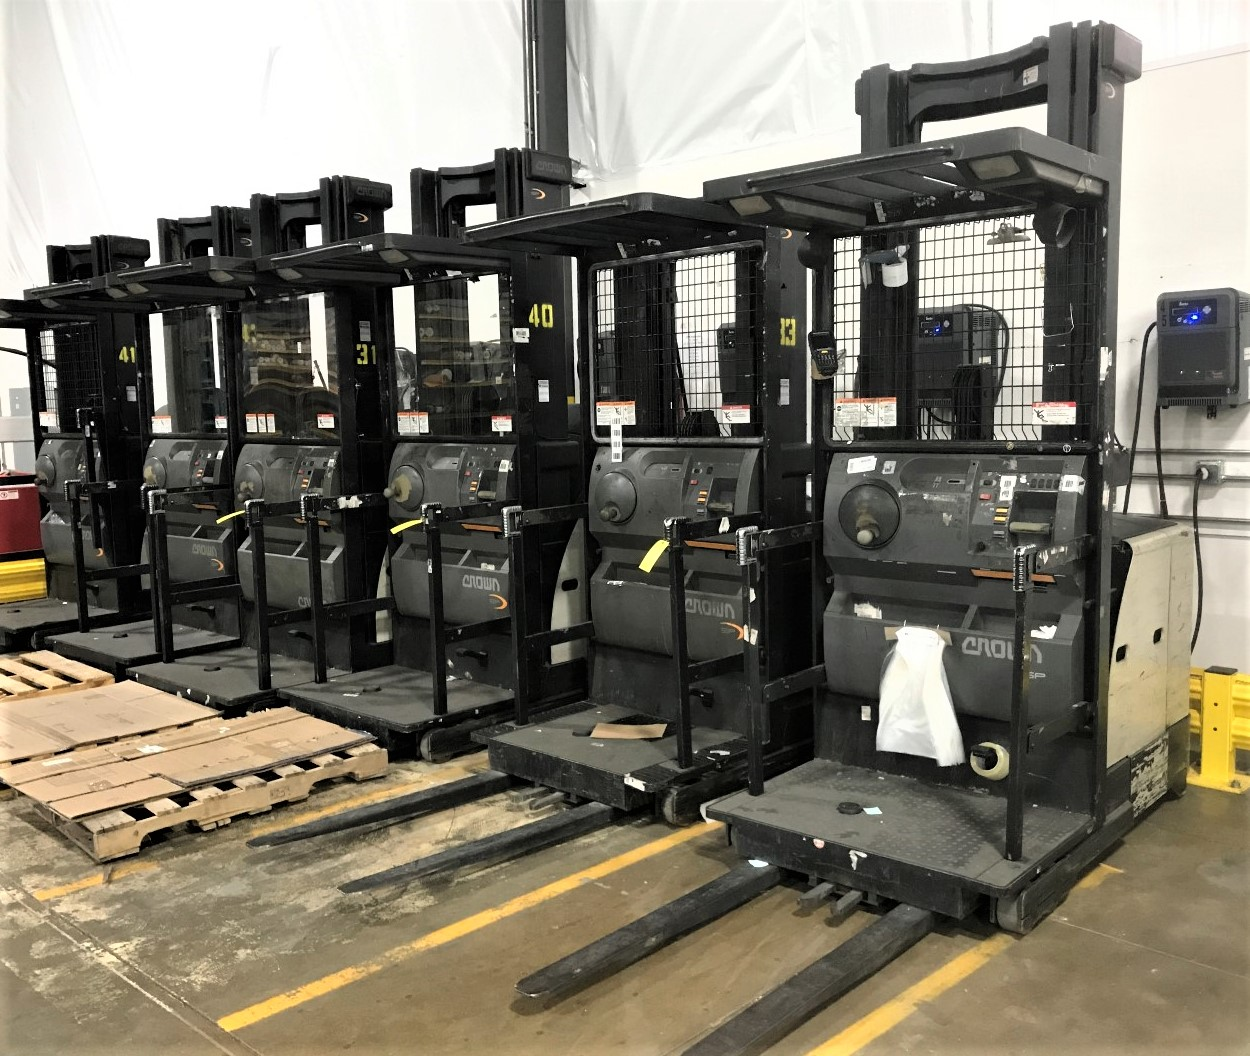 LIDS Surplus Warehouse Equipment & Furnishings Online Auction In Zionsville, IN